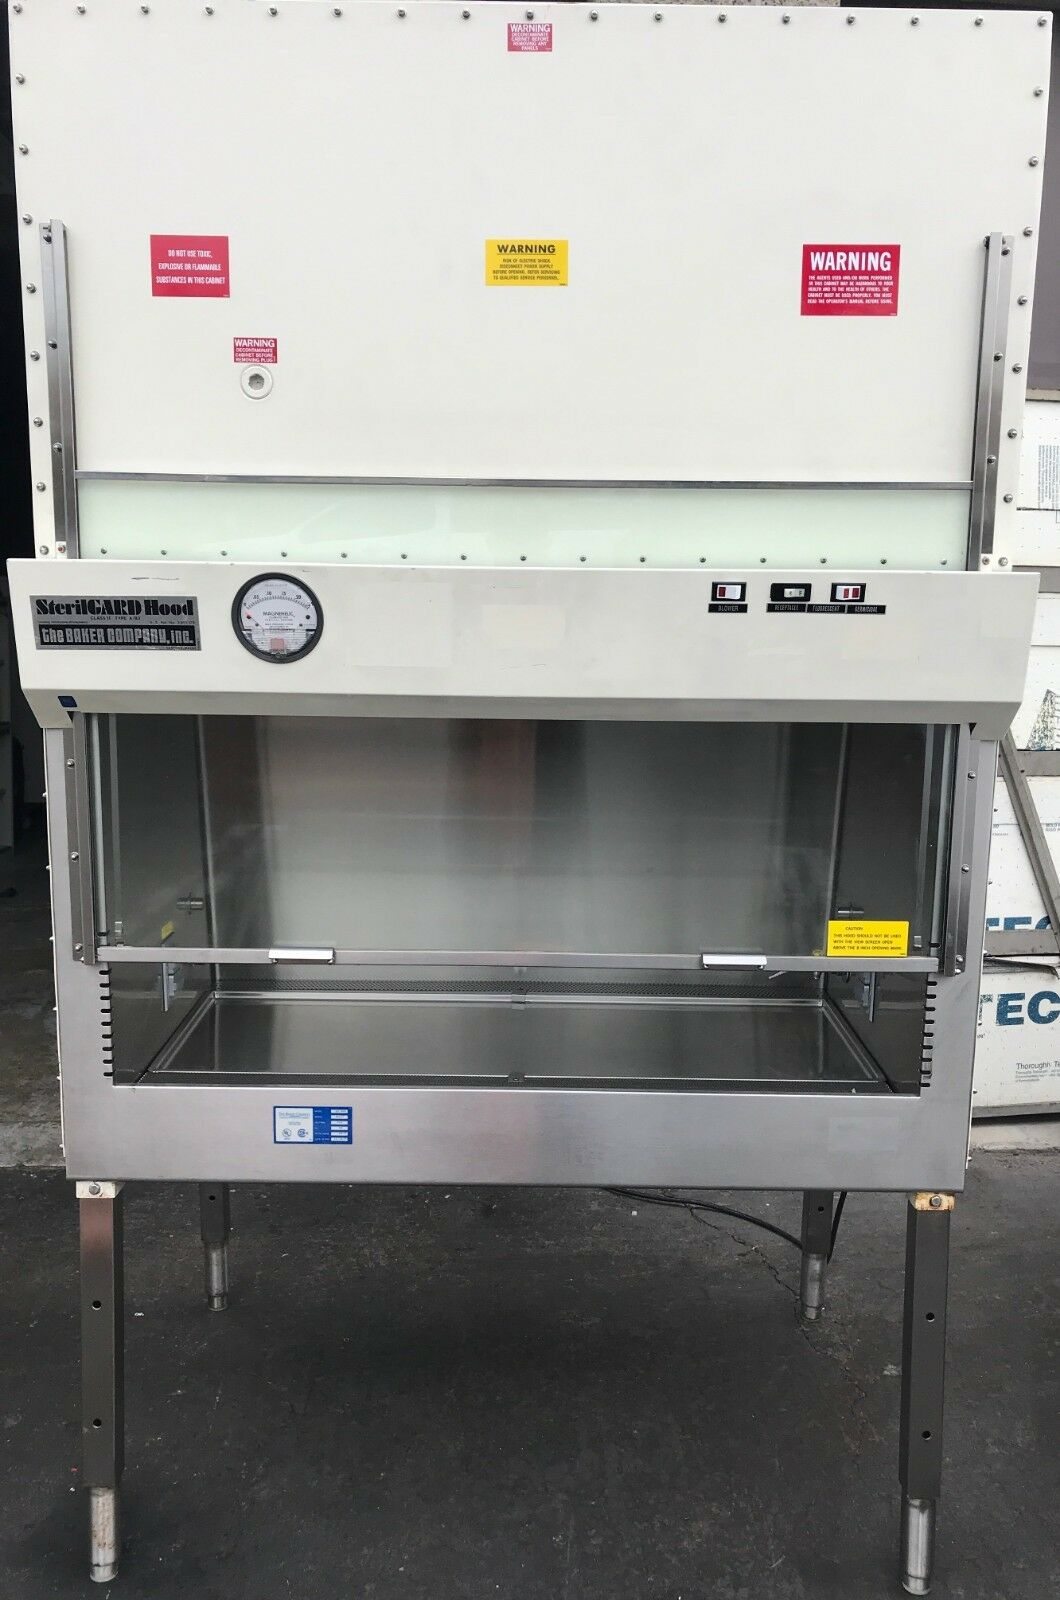 4ft A2 Baker Biosafety Cabinet SG-400, Great HEPA filters, NSF Tested